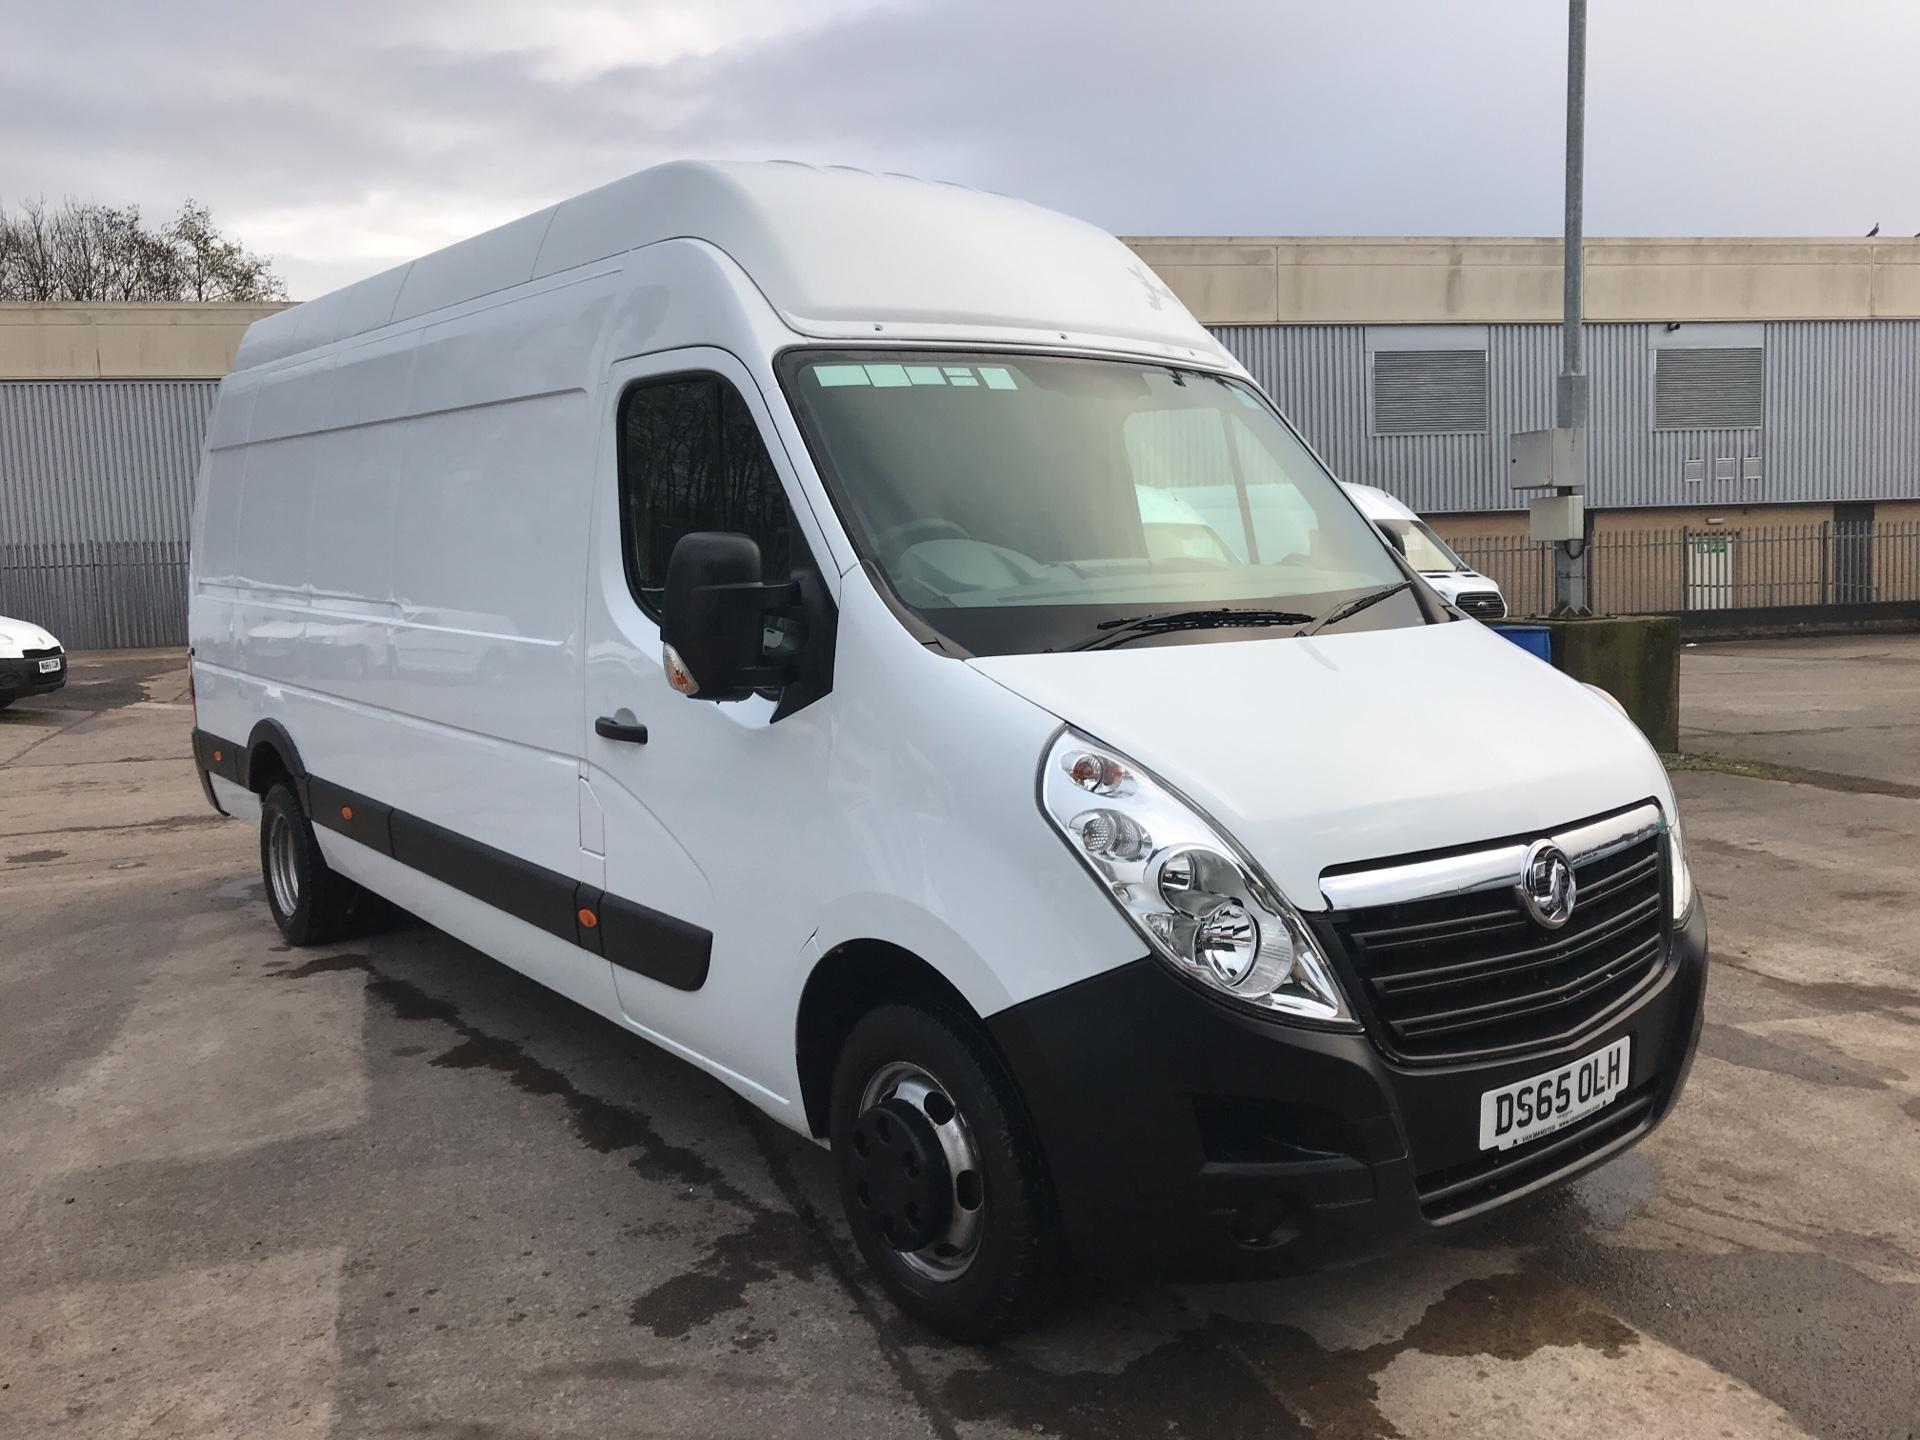 2015 Vauxhall Movano 35 L4 H3 125PS EURO 5 (DS65OLH)